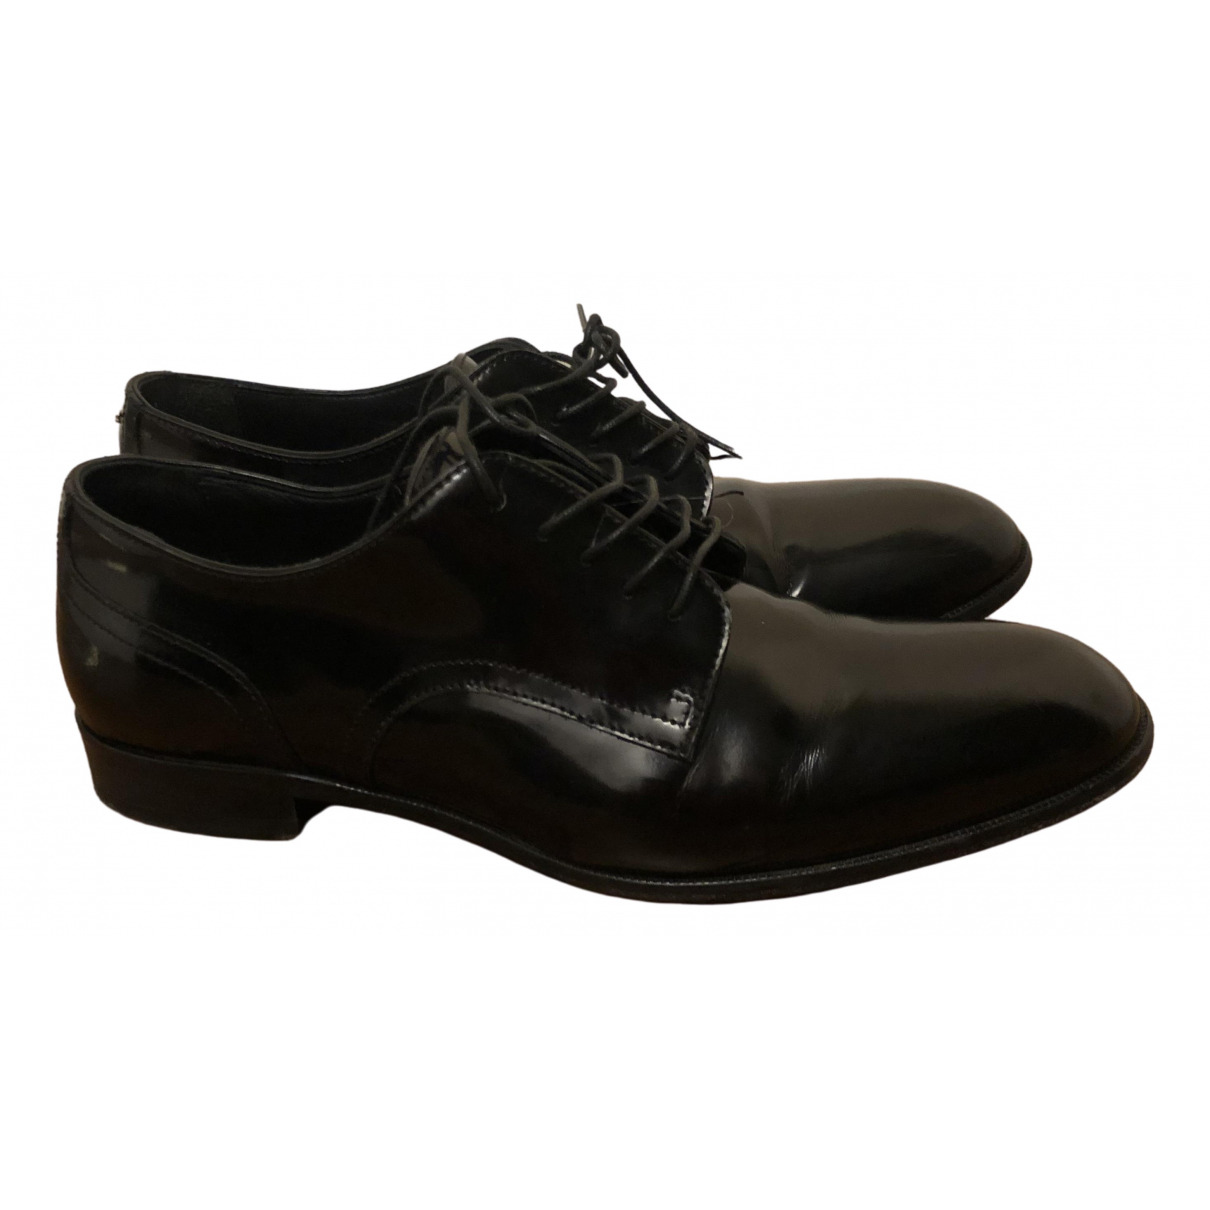 Dsquared2 \N Black Patent leather Lace ups for Women 38.5 IT